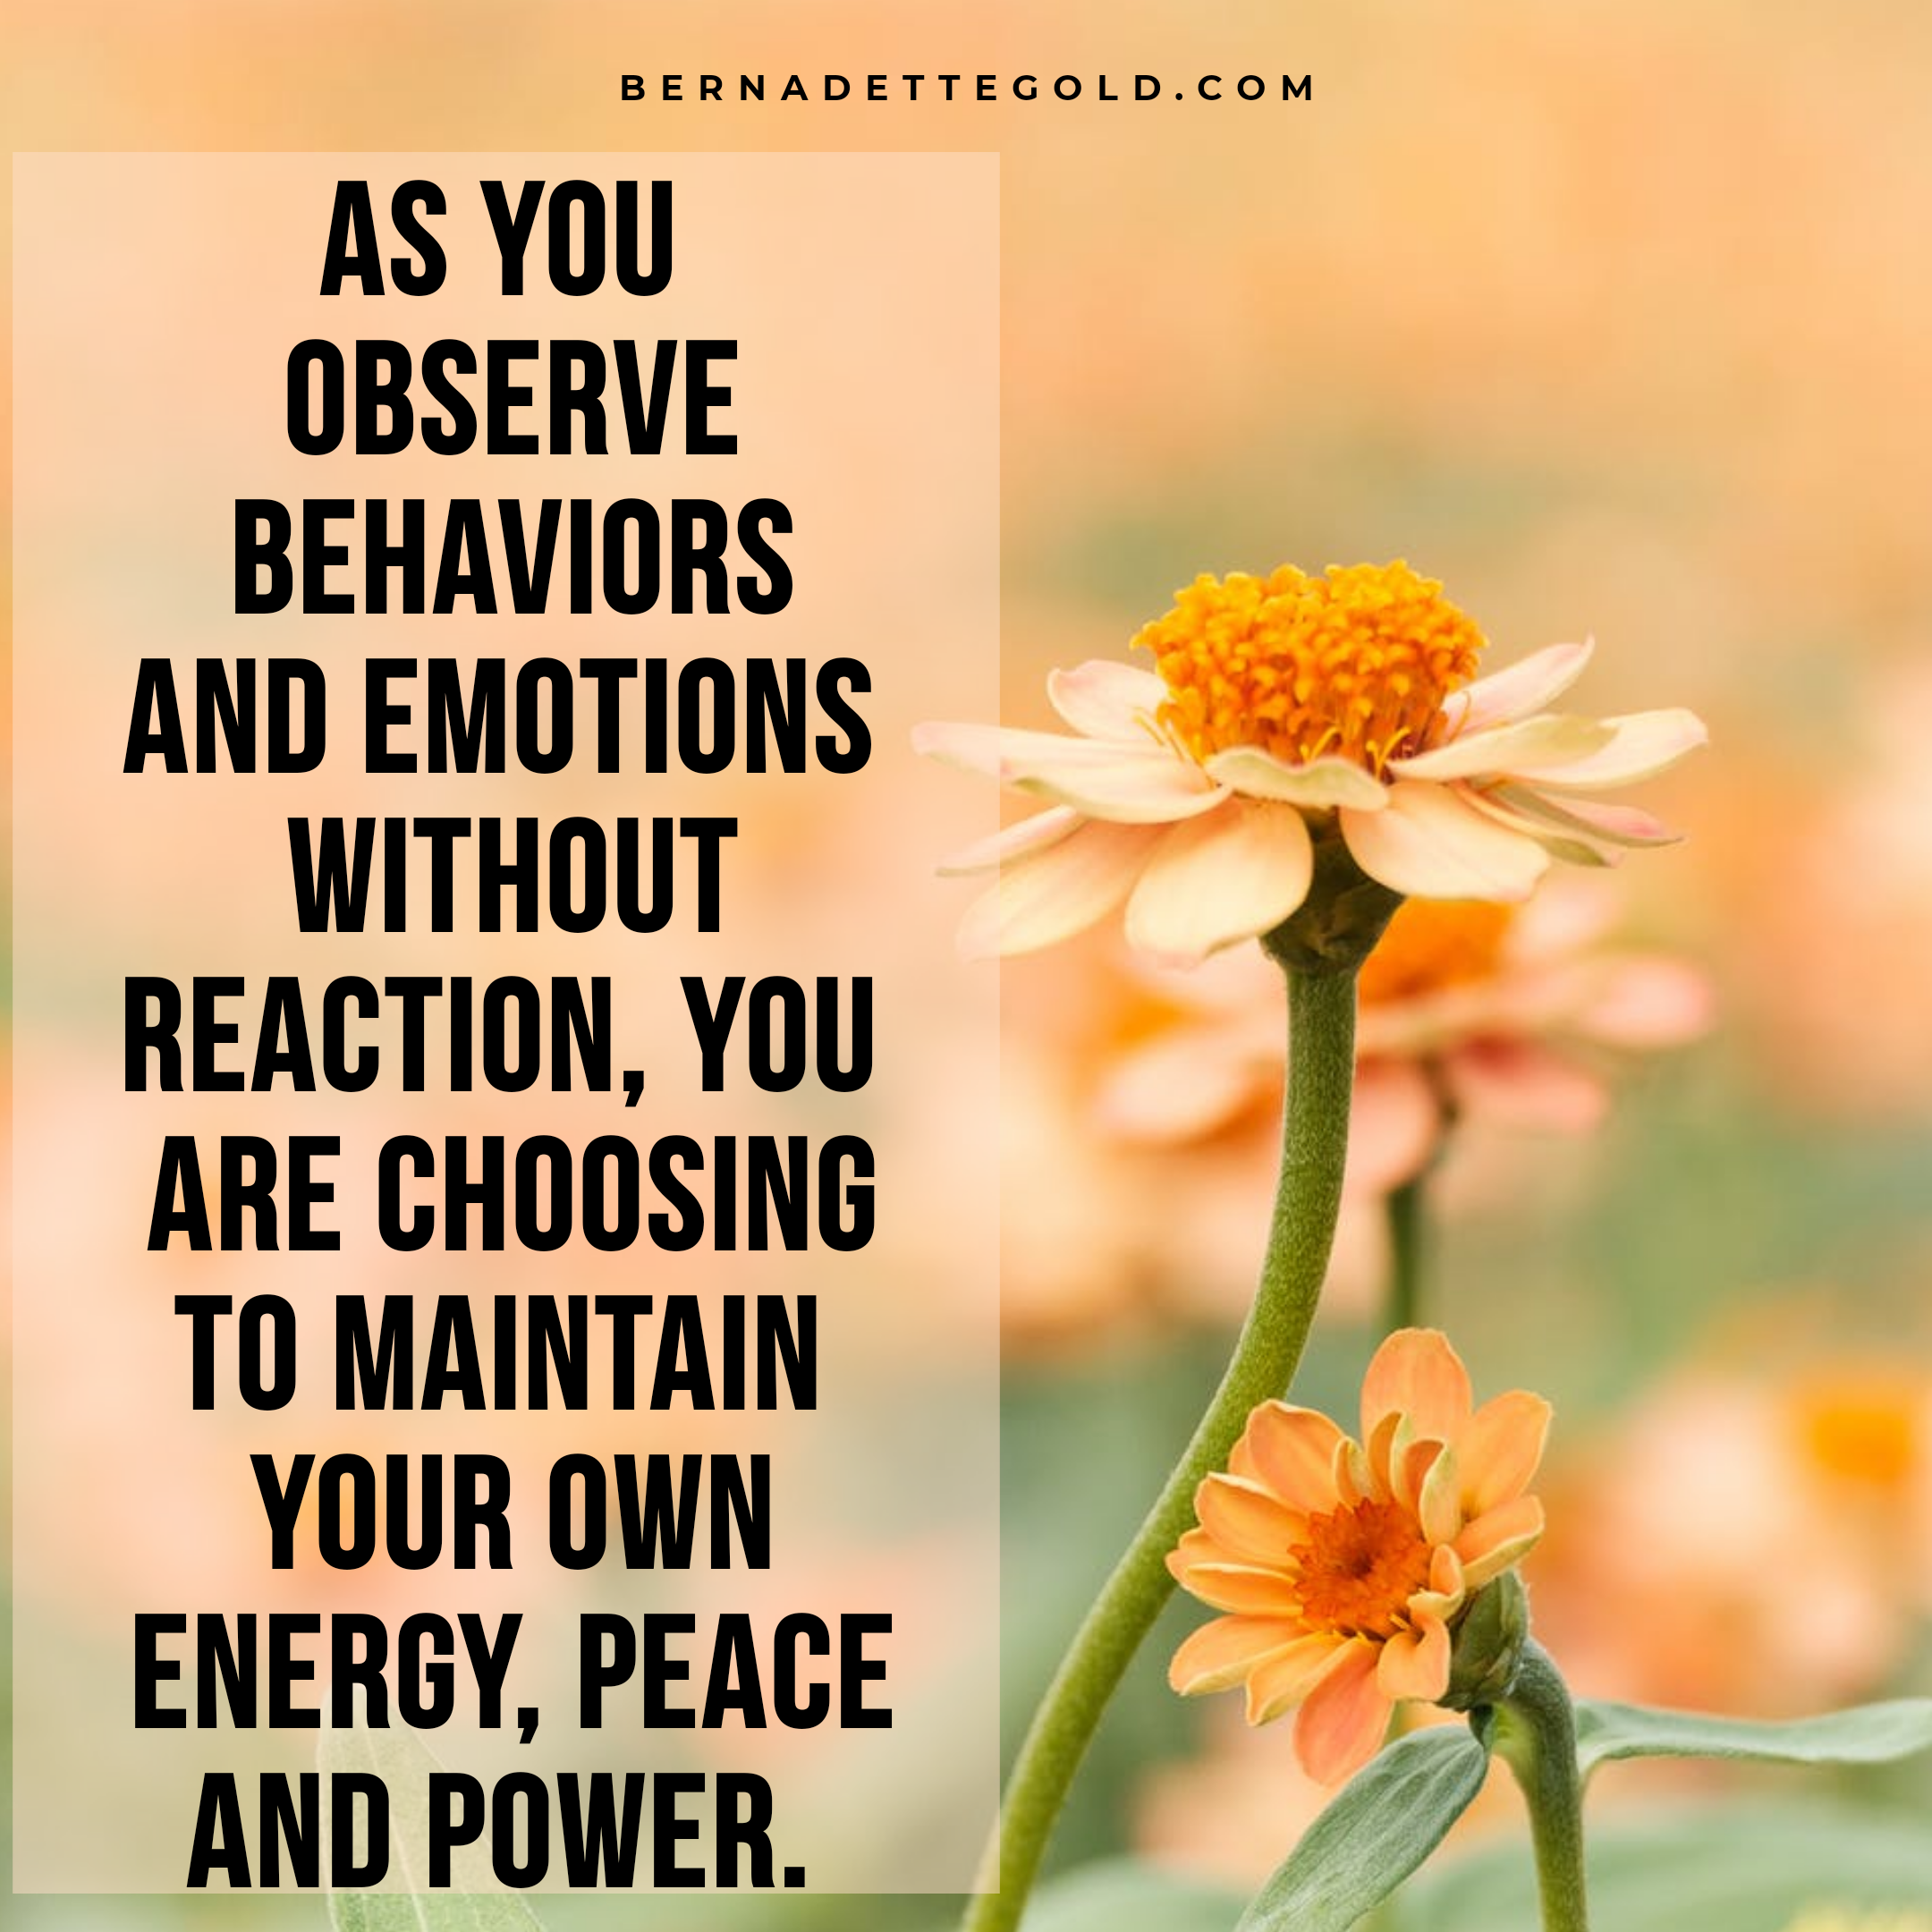 Sit back, observe and don't get pulled into the downward spiral of negative emotions and drama. ❤ If you need help schedule an appointment.  #PositiveVibes #Peace #energy #power #selfloveisthebestlove #psychicreading #clairvoyant #lifeisgood #quotes